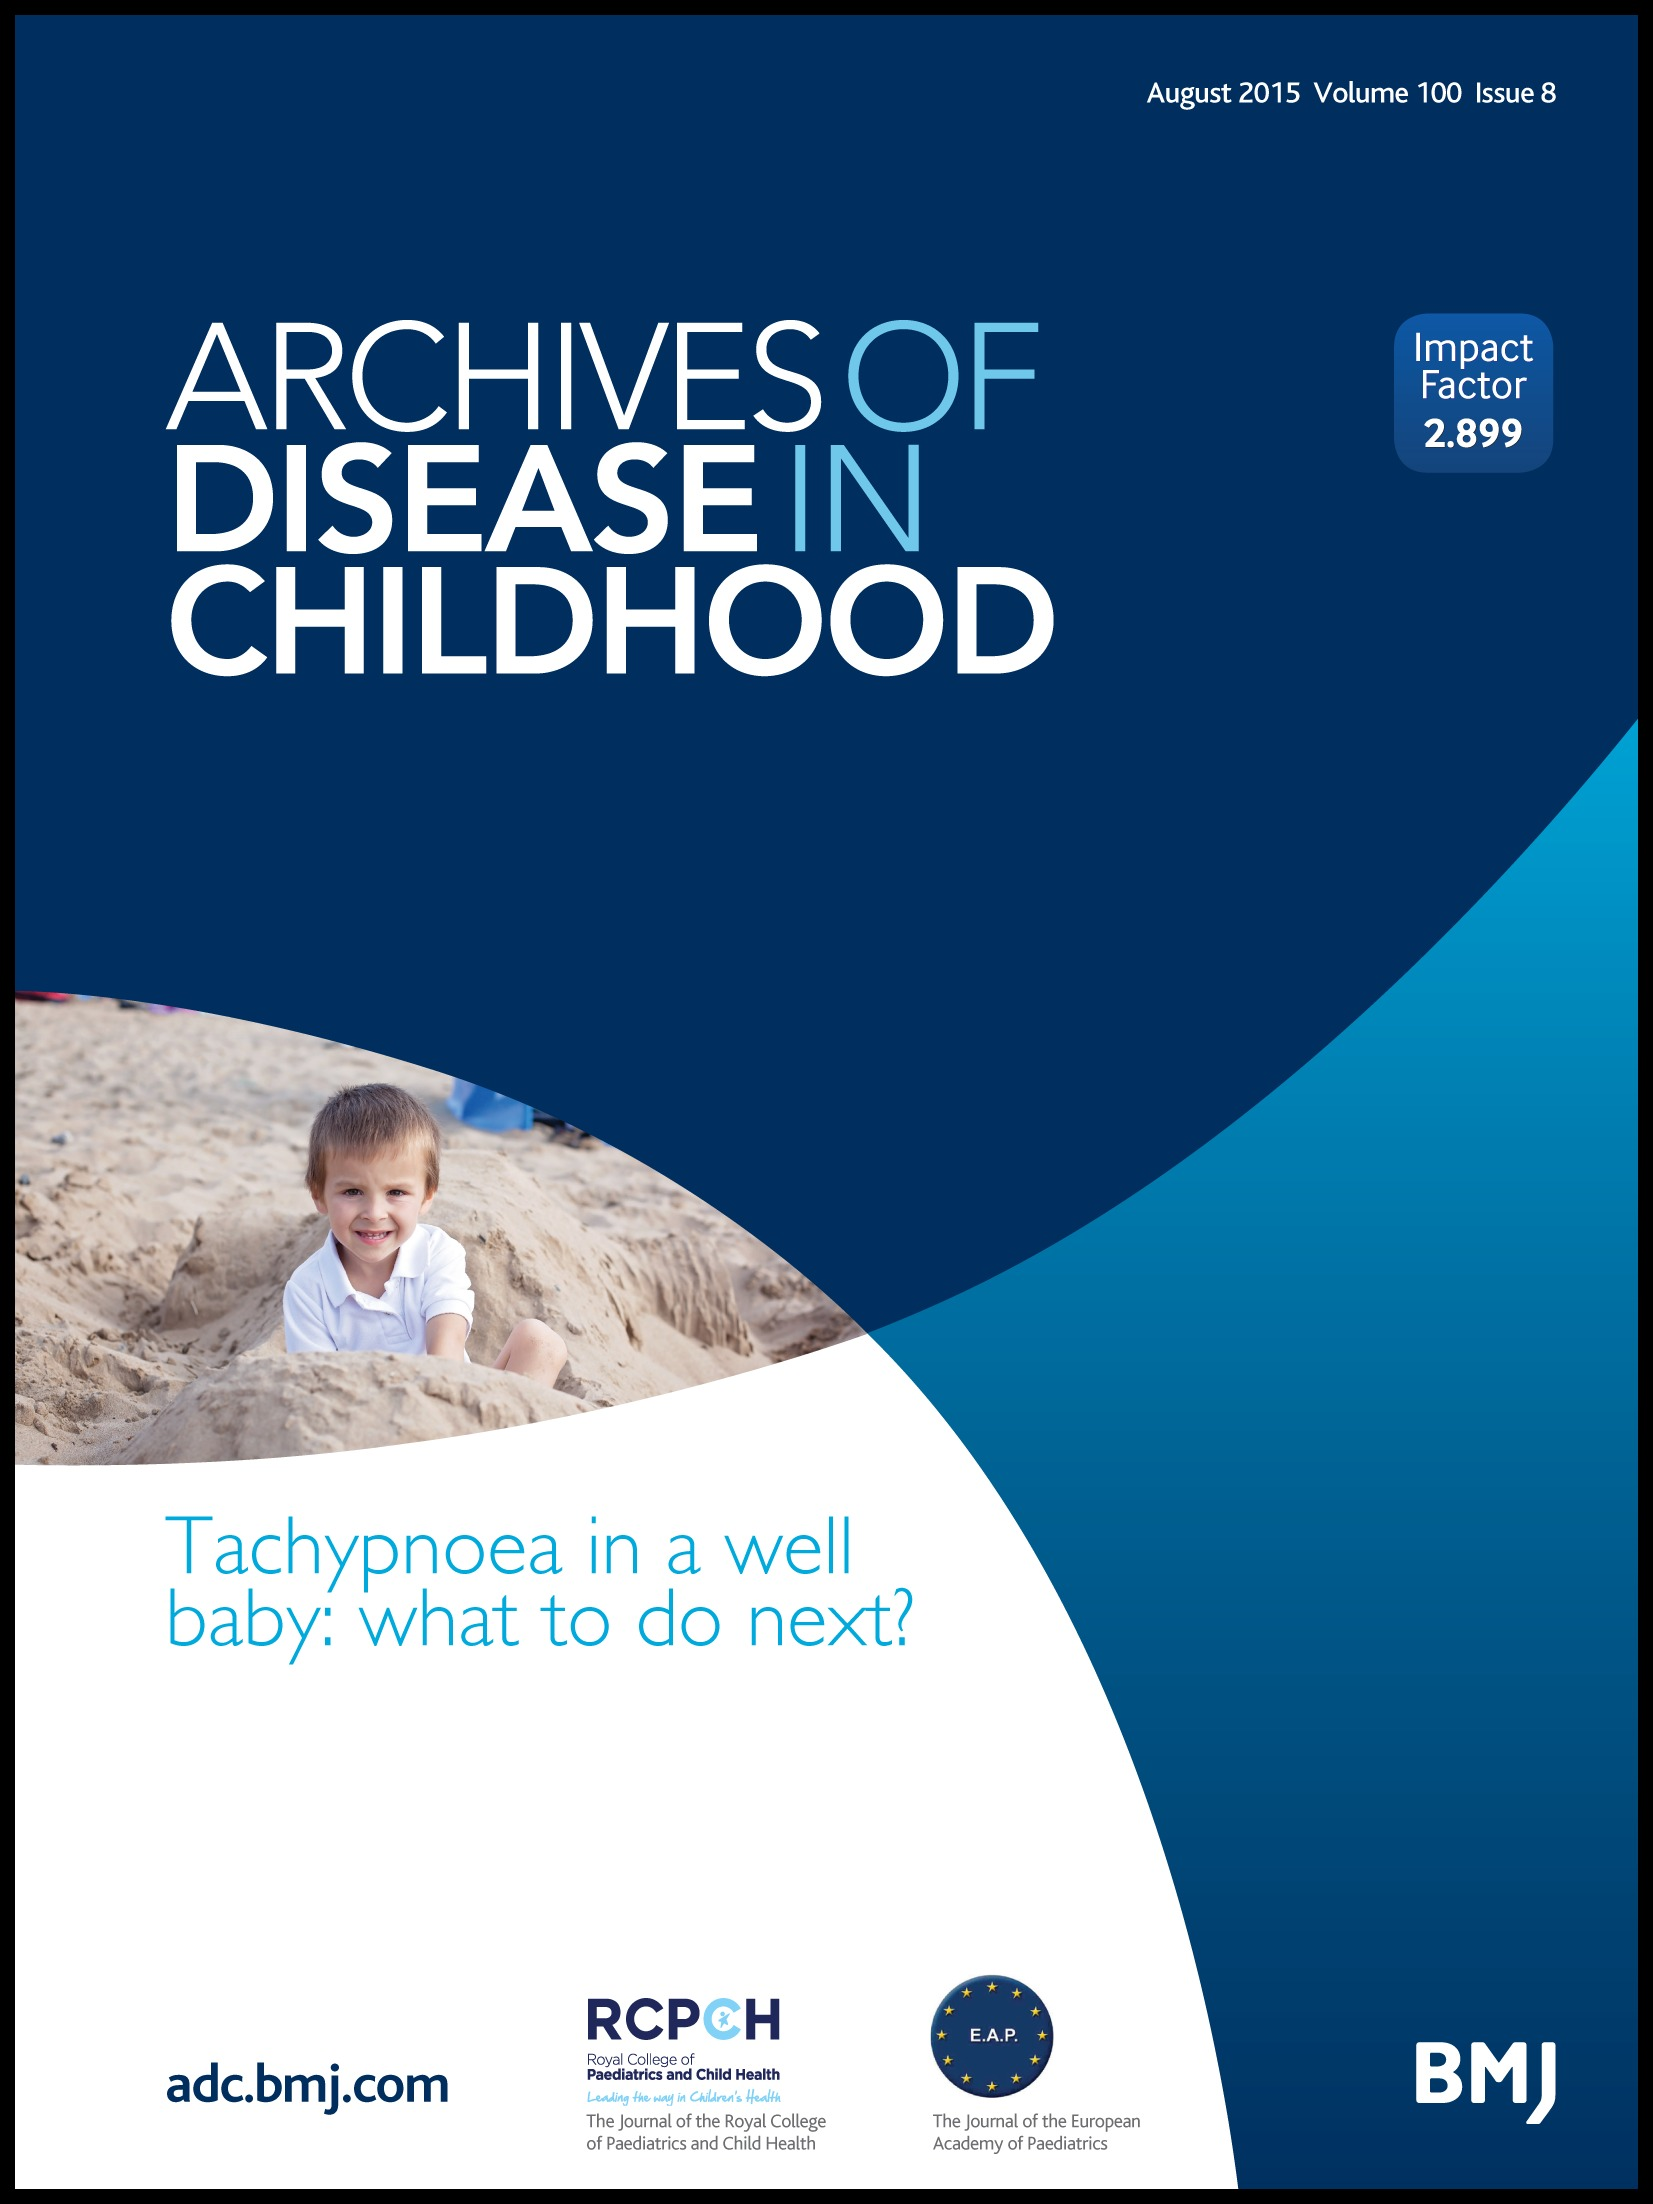 Tachypnoea in a well baby: what to do next? | Archives of